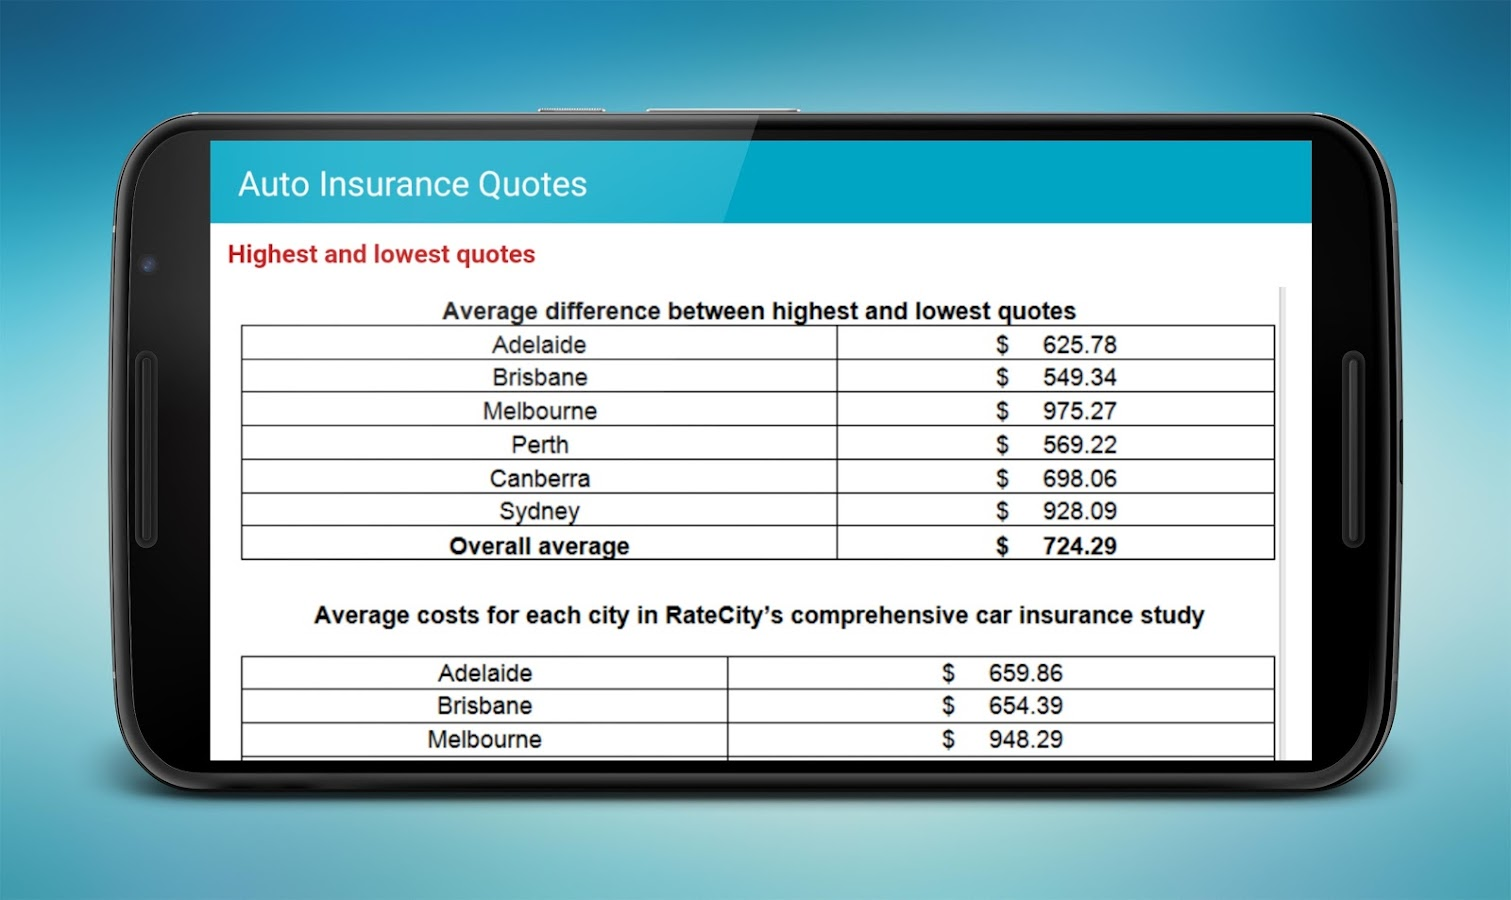 Windhaven Insurance Quote Auto Insurance Quotes  Android Apps On Google Play